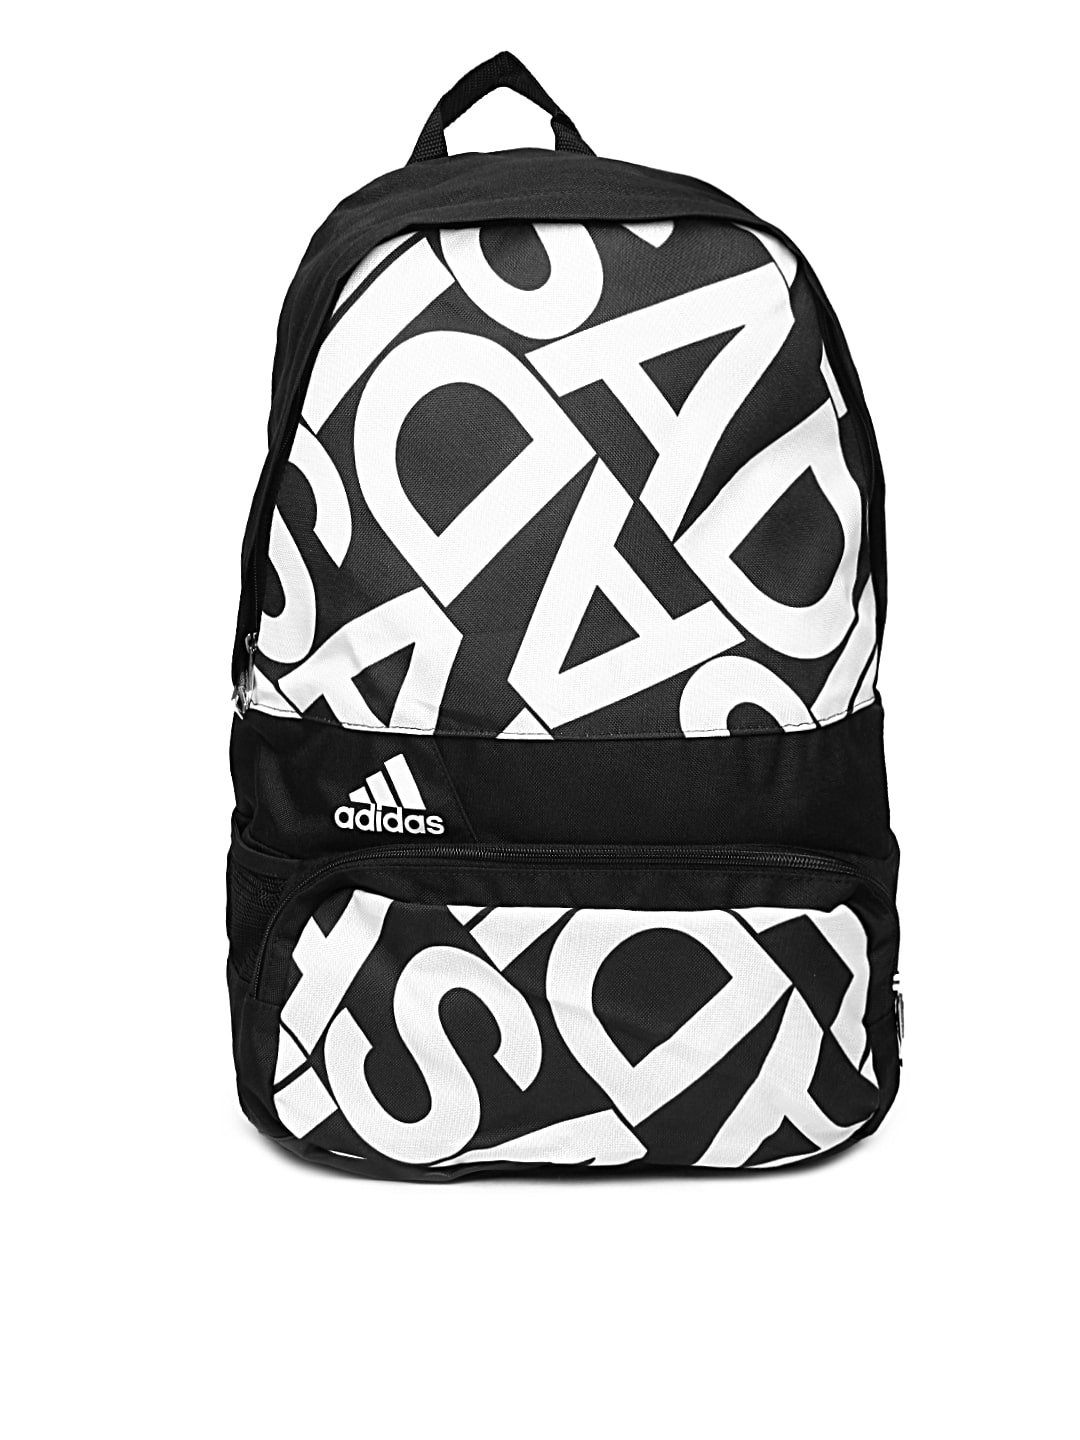 43b90625ed06 buy adidas backpacks online Sale